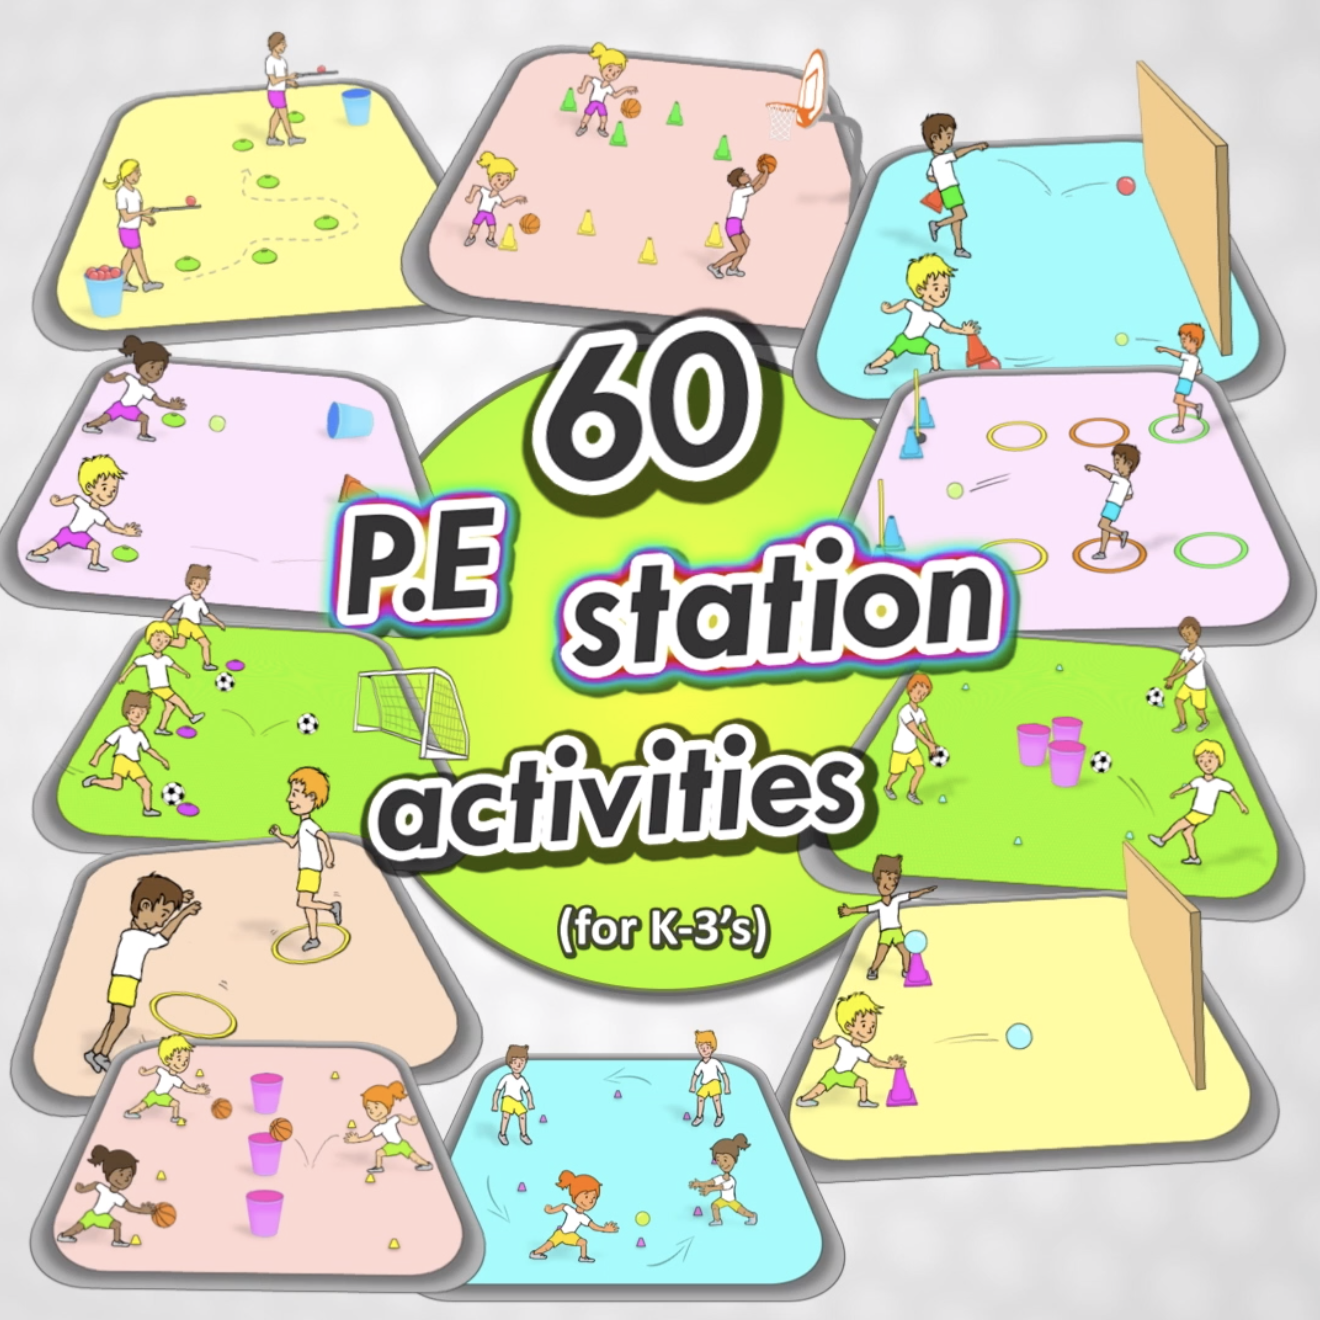 60 Of The Best Pe Station Activities For Your Kindergarten To Grade 3 S Great For Every